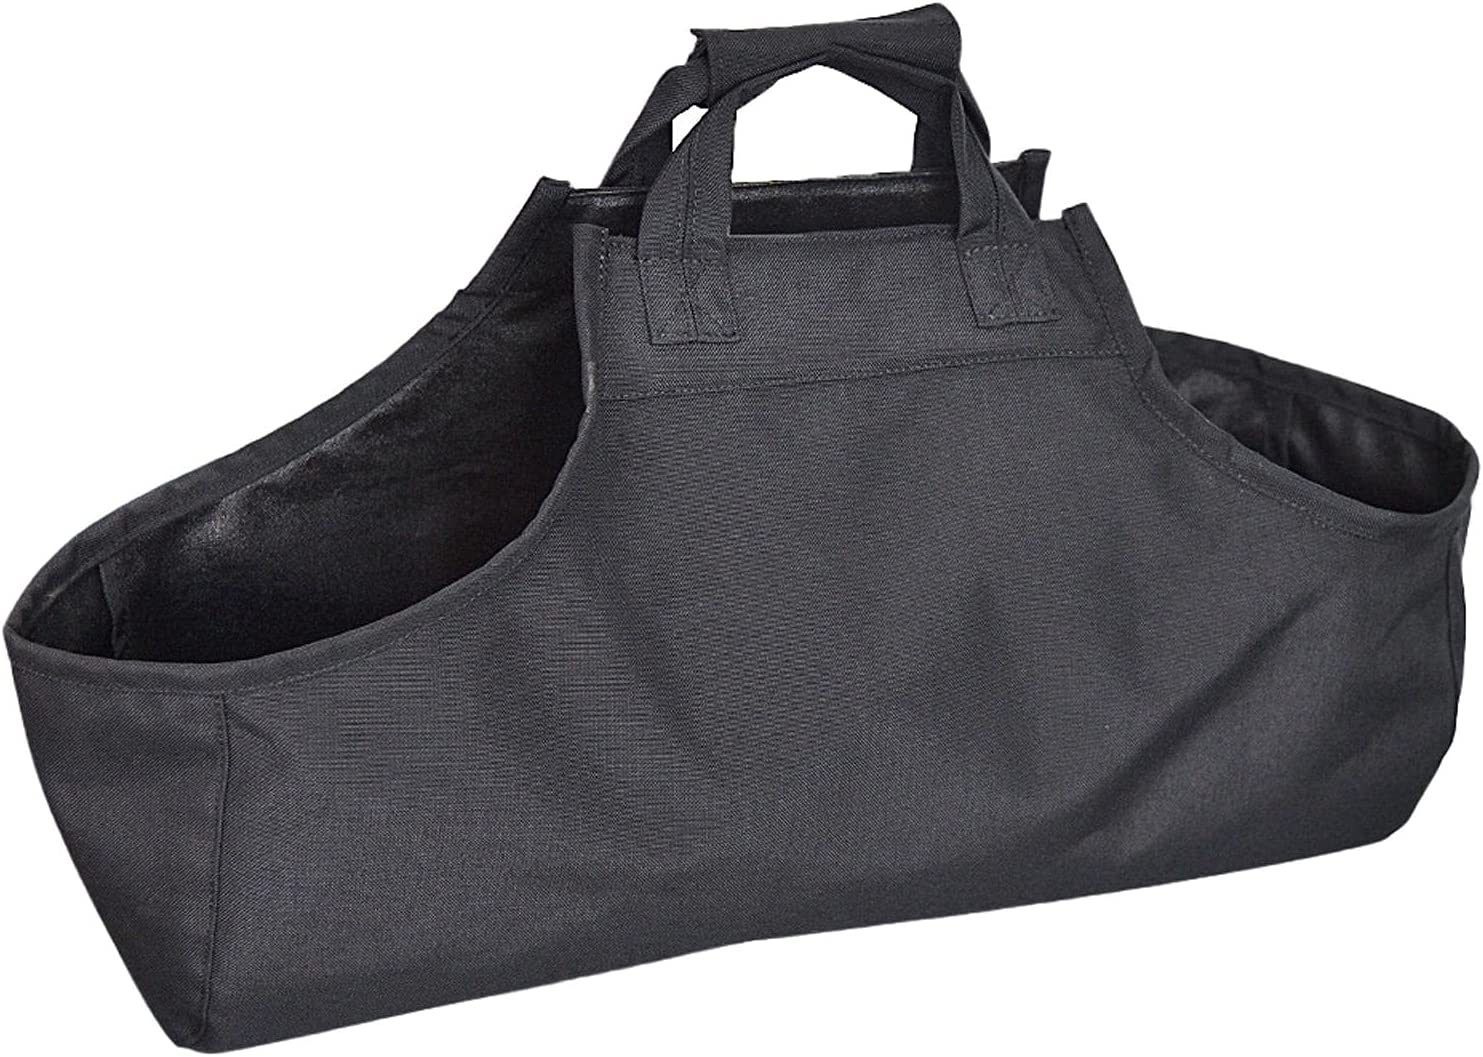 Super-cheap HONUTIGE Log Carrier Bag Firewood Carrying Ca ! Super beauty product restock quality top! Tote Large